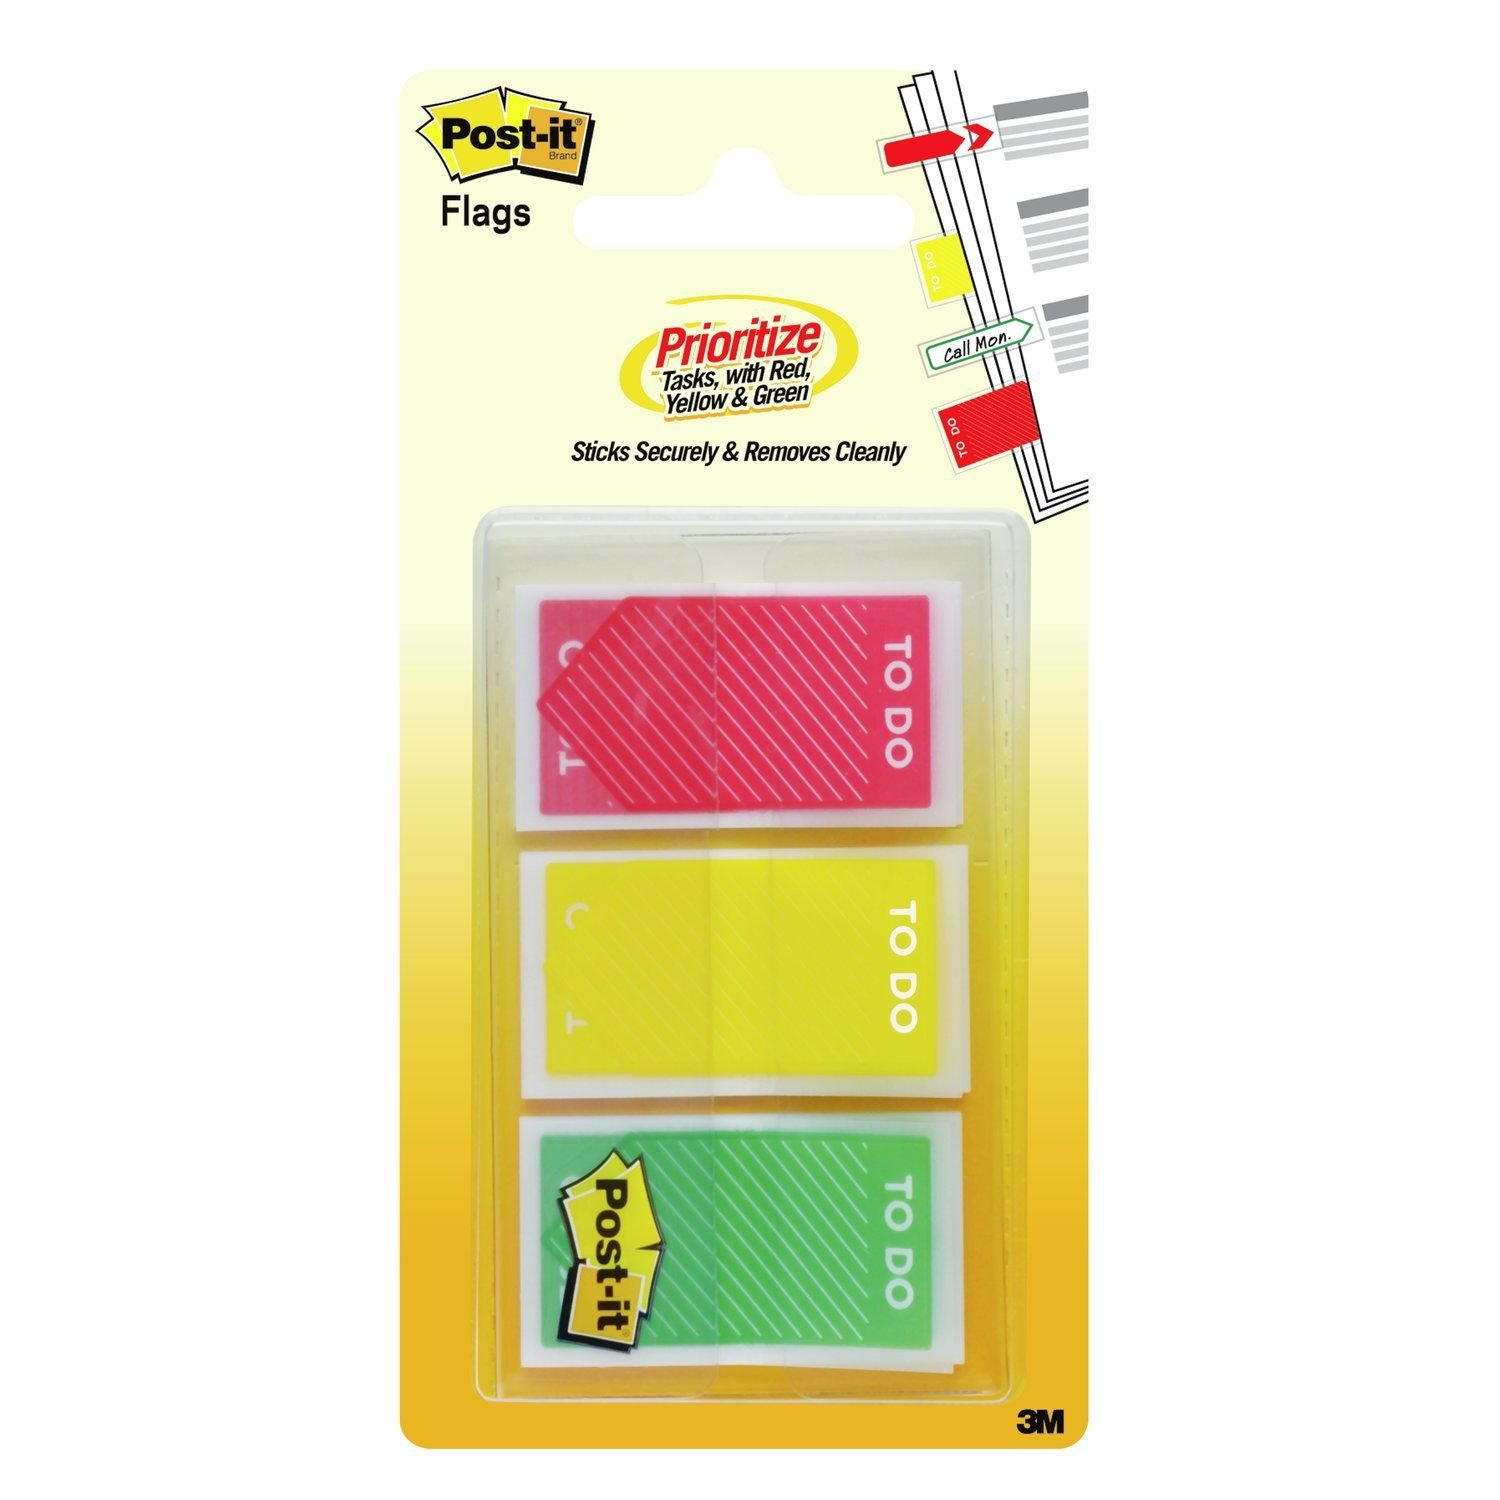 Post-it Flags 682-TODO, Sticks Securely and Removes Cleanly Without Damaging Documents.94 in. x 1.7 in, (682-TODO)